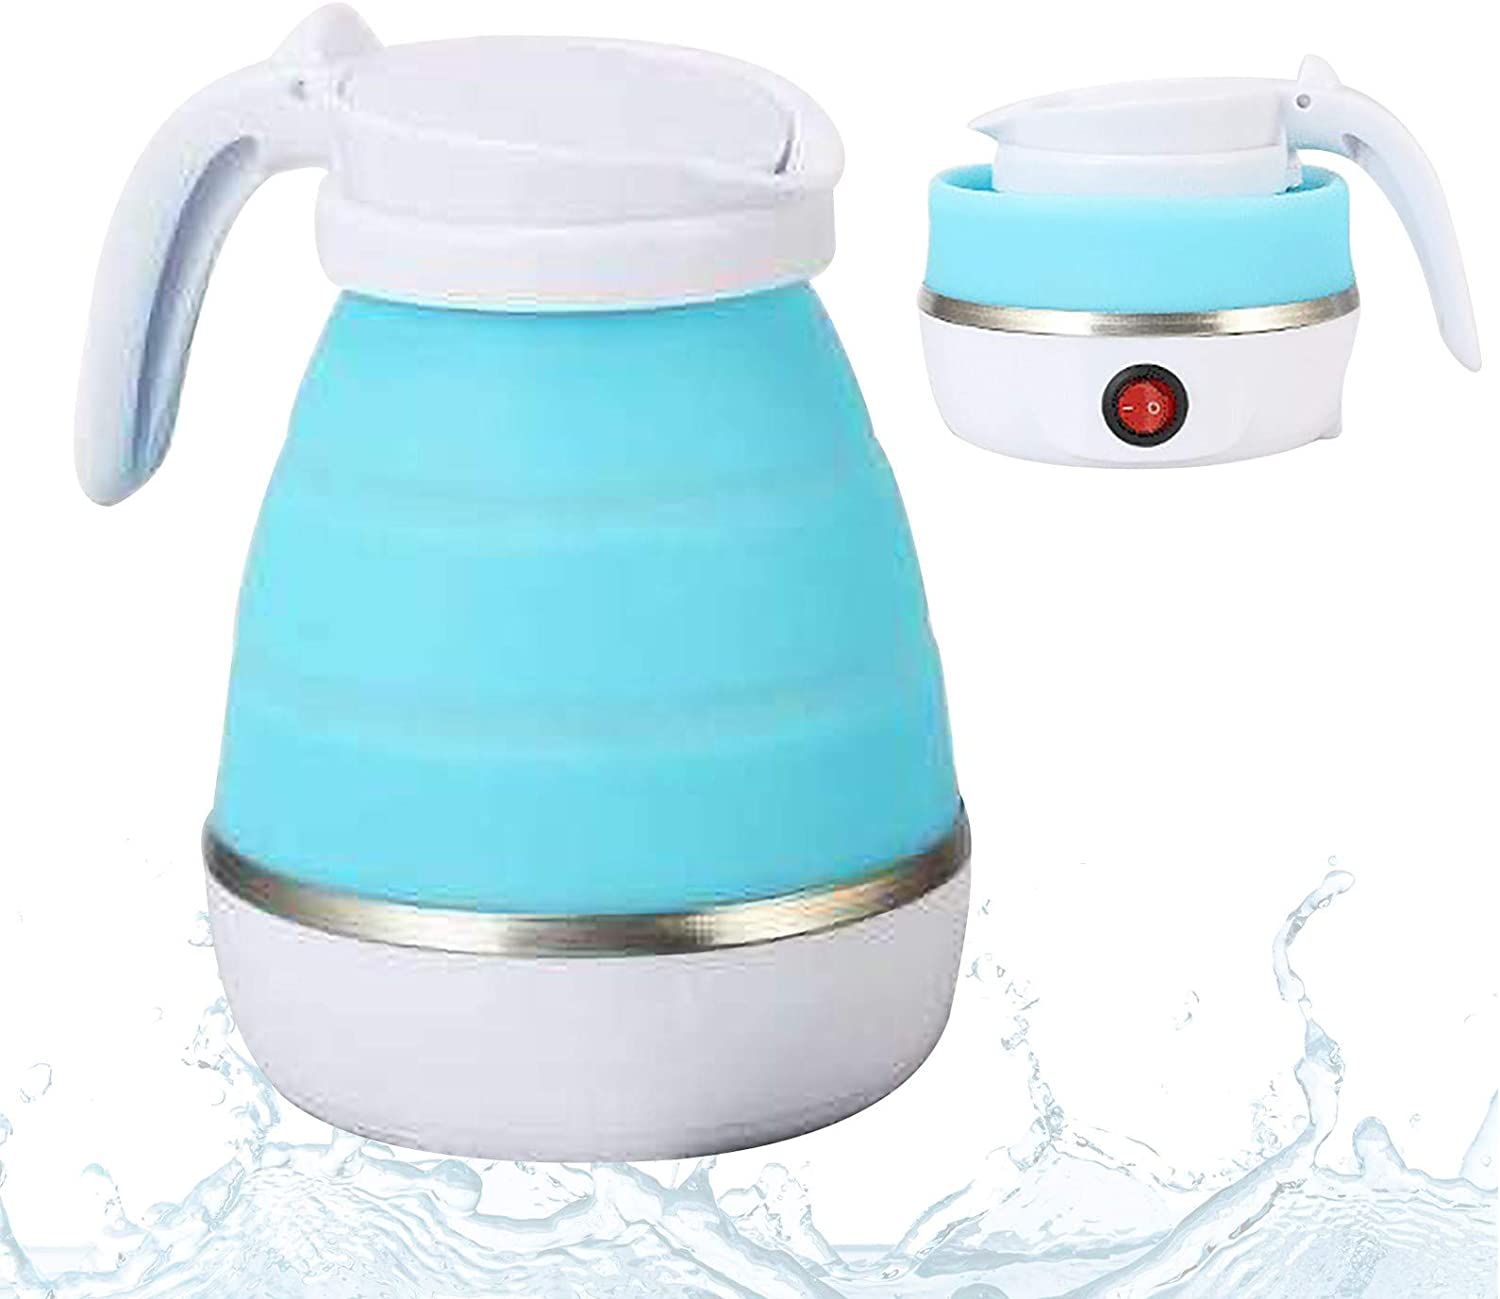 Folding Electric Kettle, Tourism Artifact Portable 600ml Water Heater Kettle, Palm-Sized Food Silicone 110V Electric Kettle for Boiling Water US Plug In for Camping Travel Hiking (Blue, 7.16x6.77'')